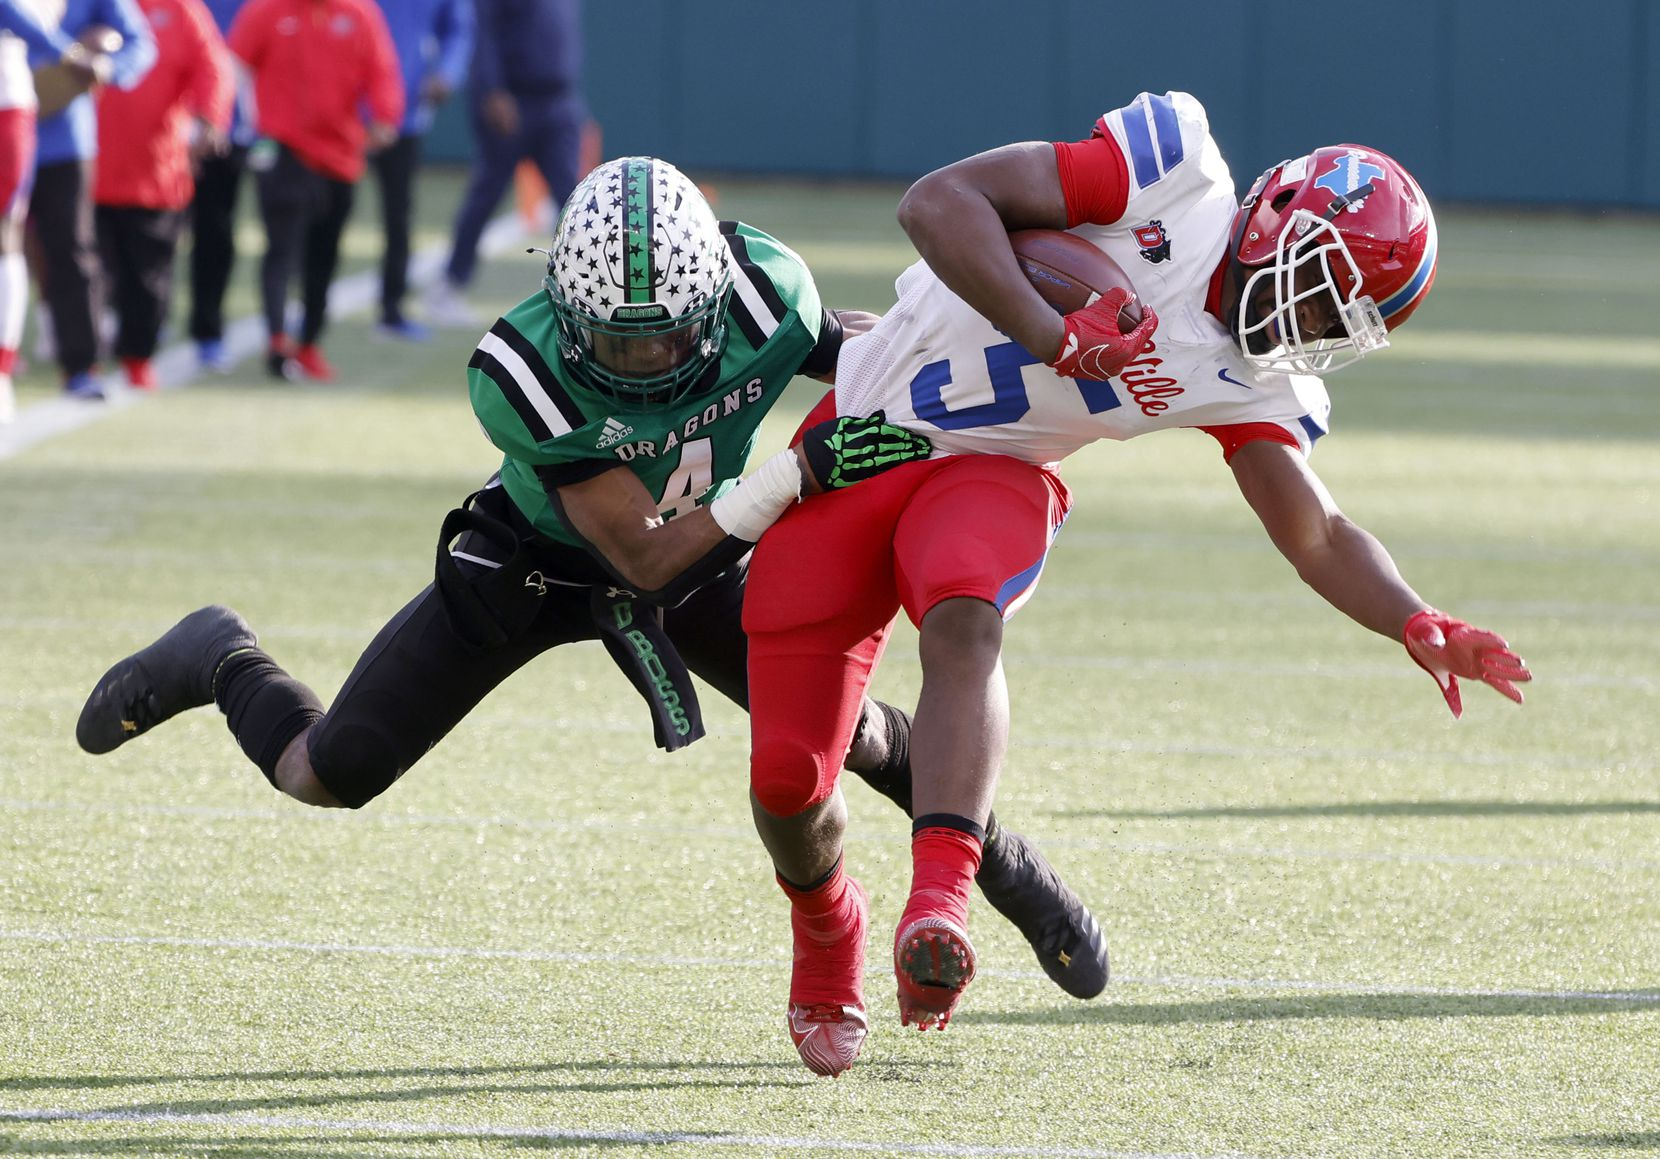 Southlake Carroll's Cinque Williams (4) tackles Duncanville's Malachi Medlock (5) during the Class 6A Division I state high school football semifinal in Arlington, Texas on Jan. 9, 2020. (Michael Ainsworth)